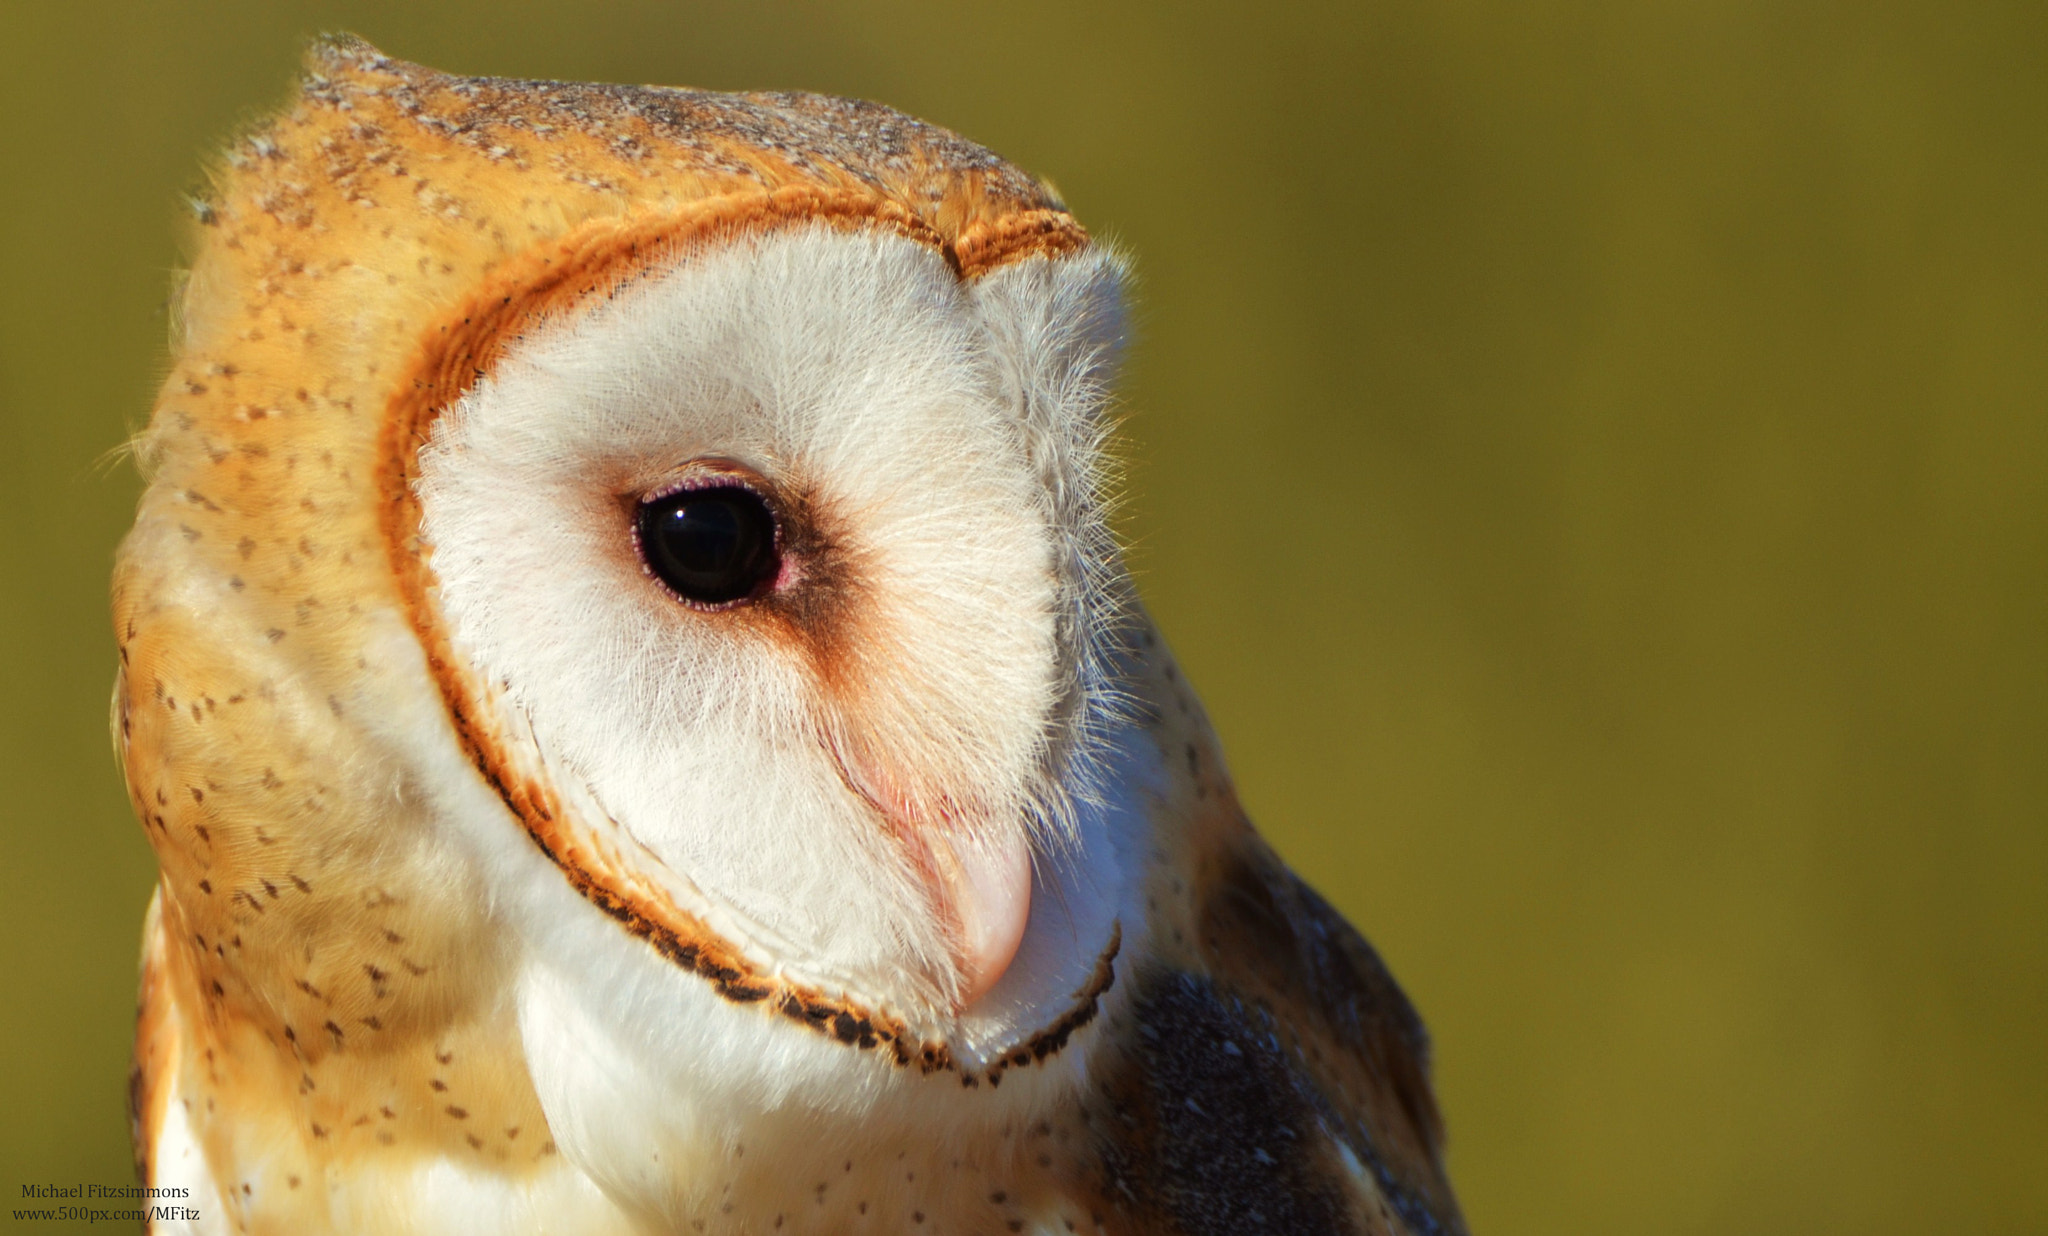 Photograph Barn Owl by Michael Fitzsimmons on 500px